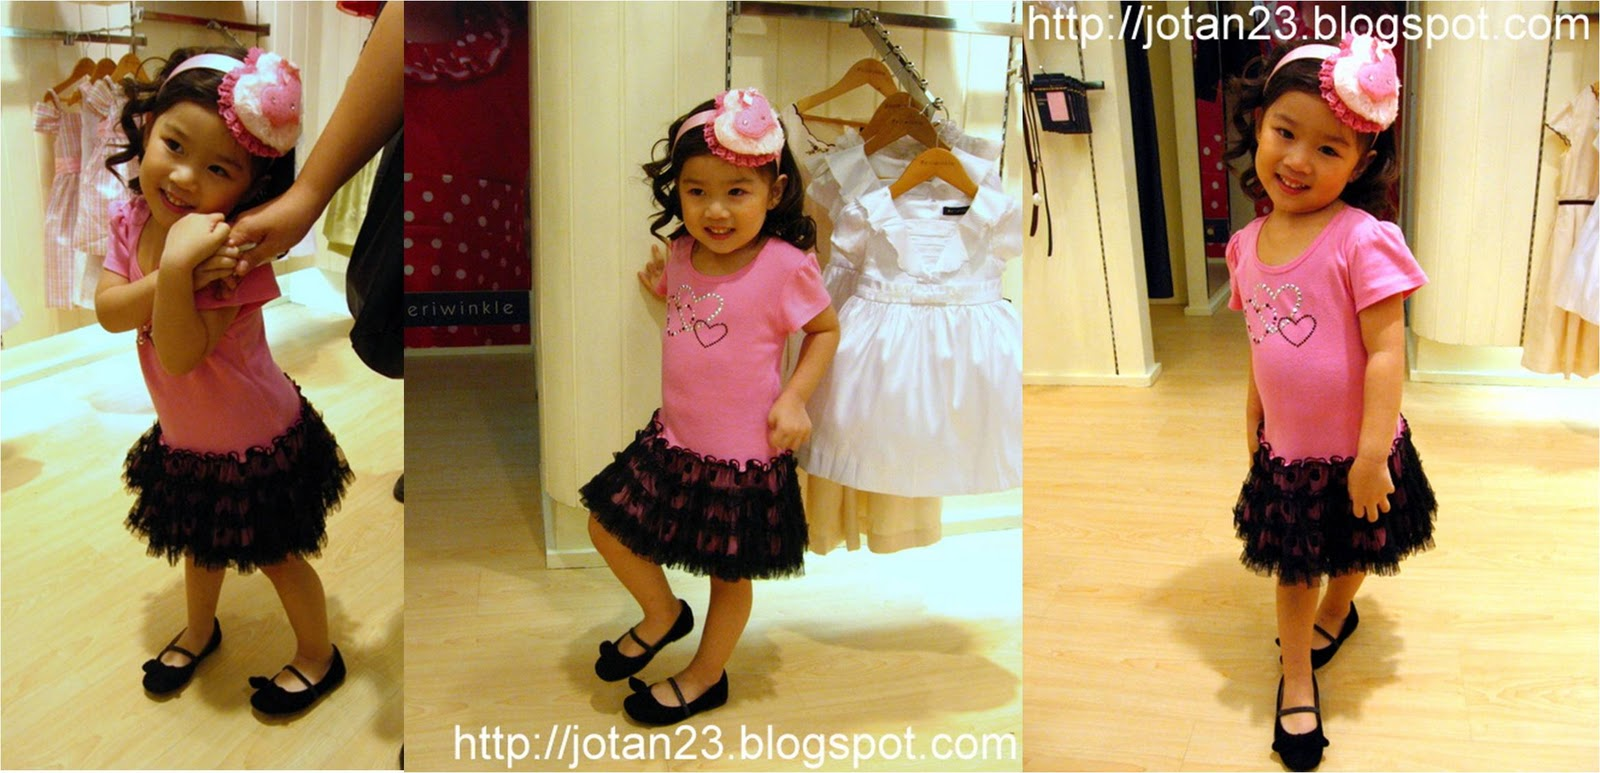 Ls Models Child http://www.1pyy.com/picture.aspx?id=296508